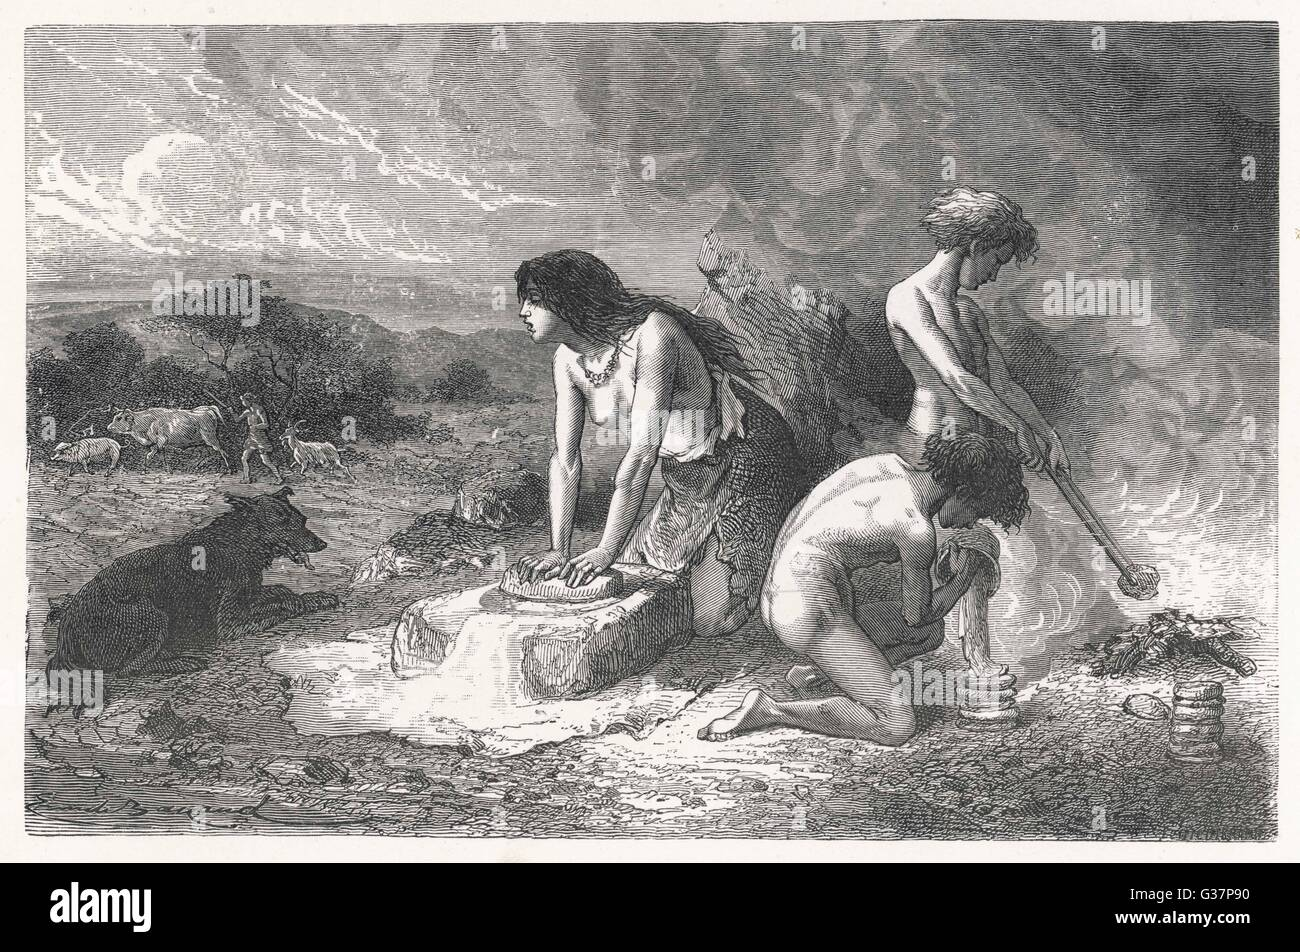 Stone age baking over the fire (Palaeolithic era)        Date: circa 3000 BC - Stock Image